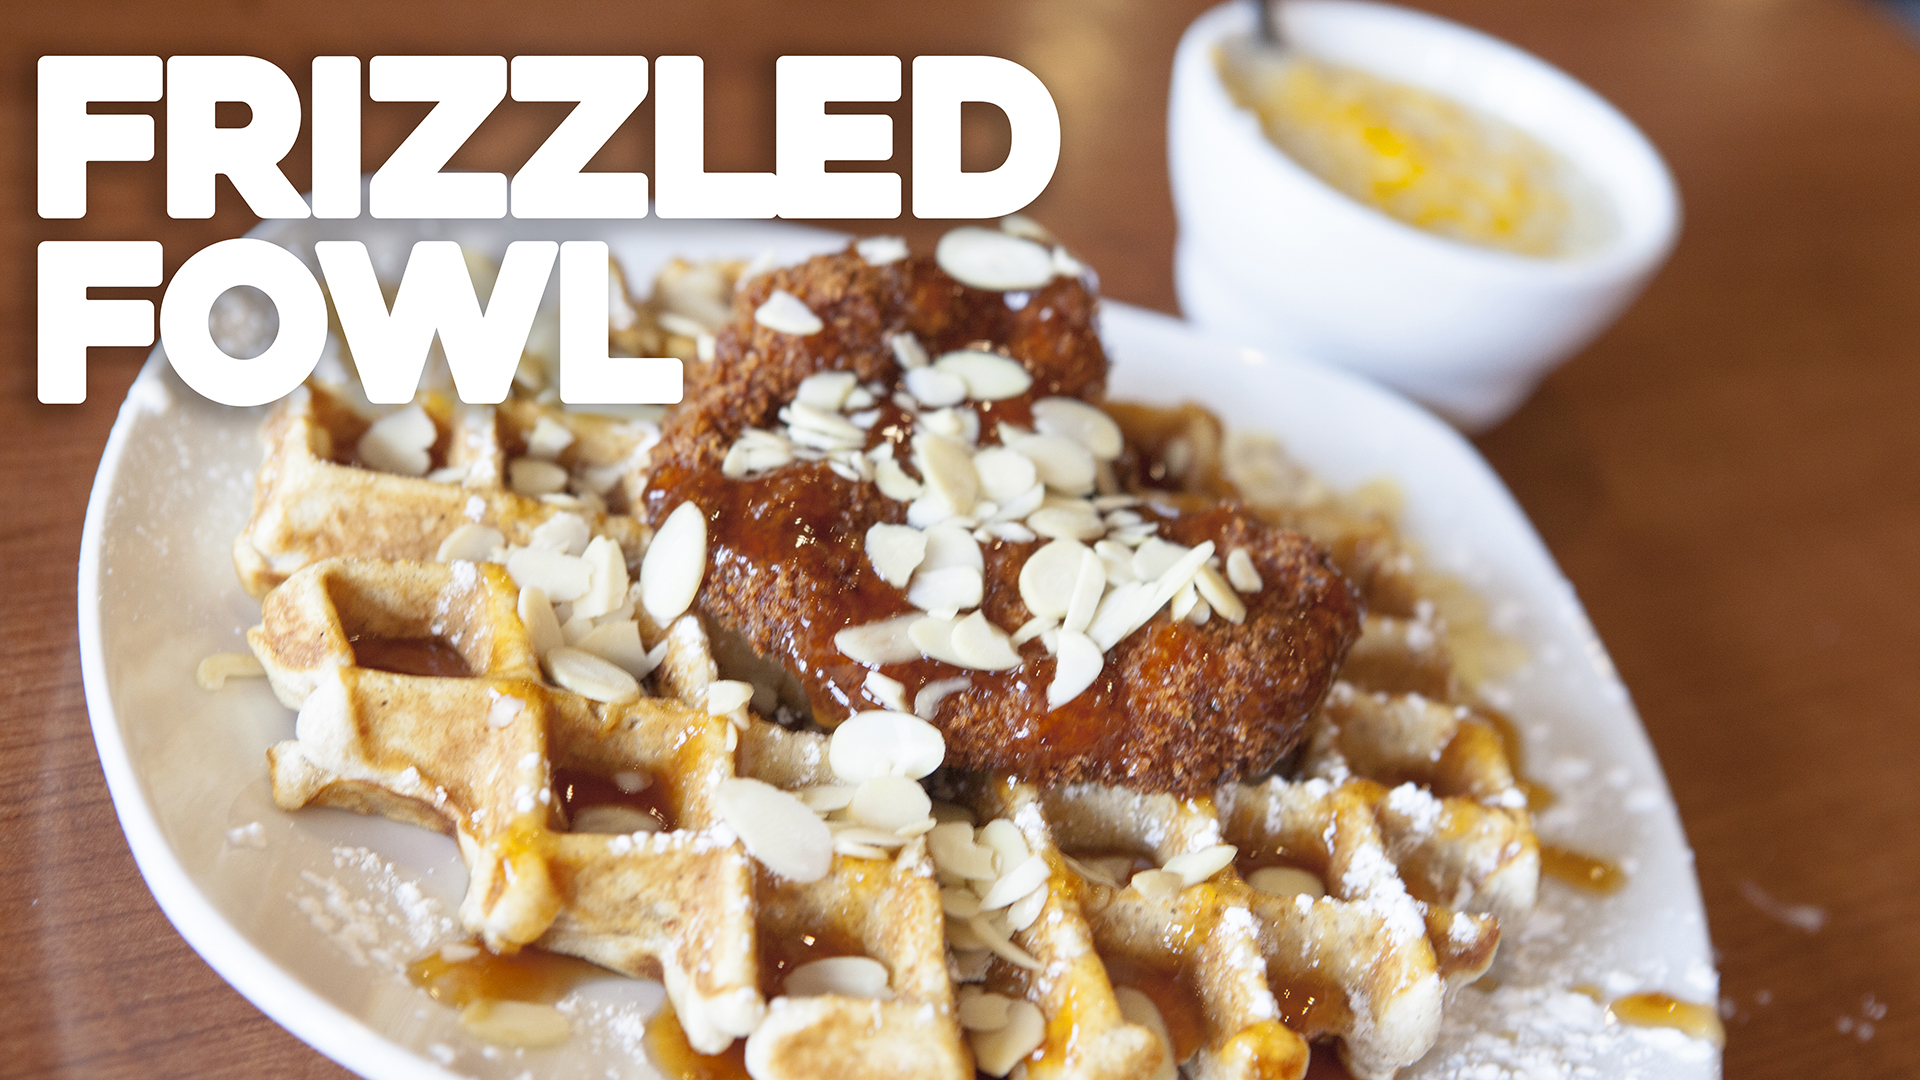 Frizzled Fowl